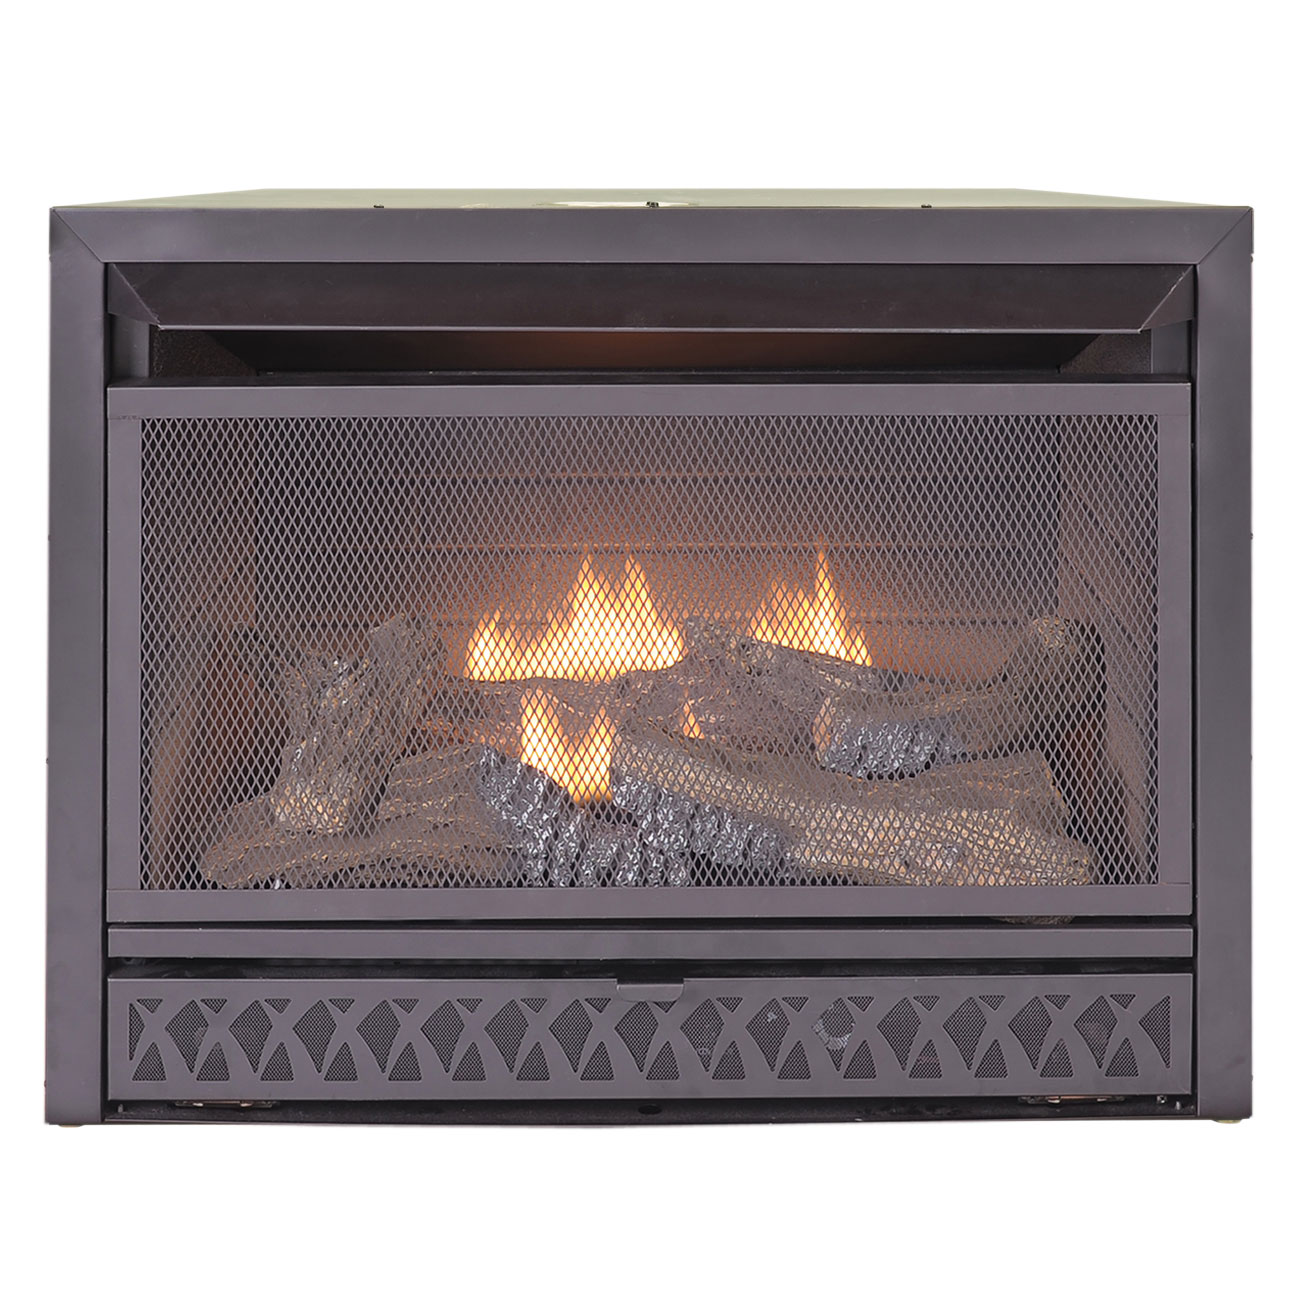 Gas Fireplace Insert Dual Fuel Technology 26 000 Btu